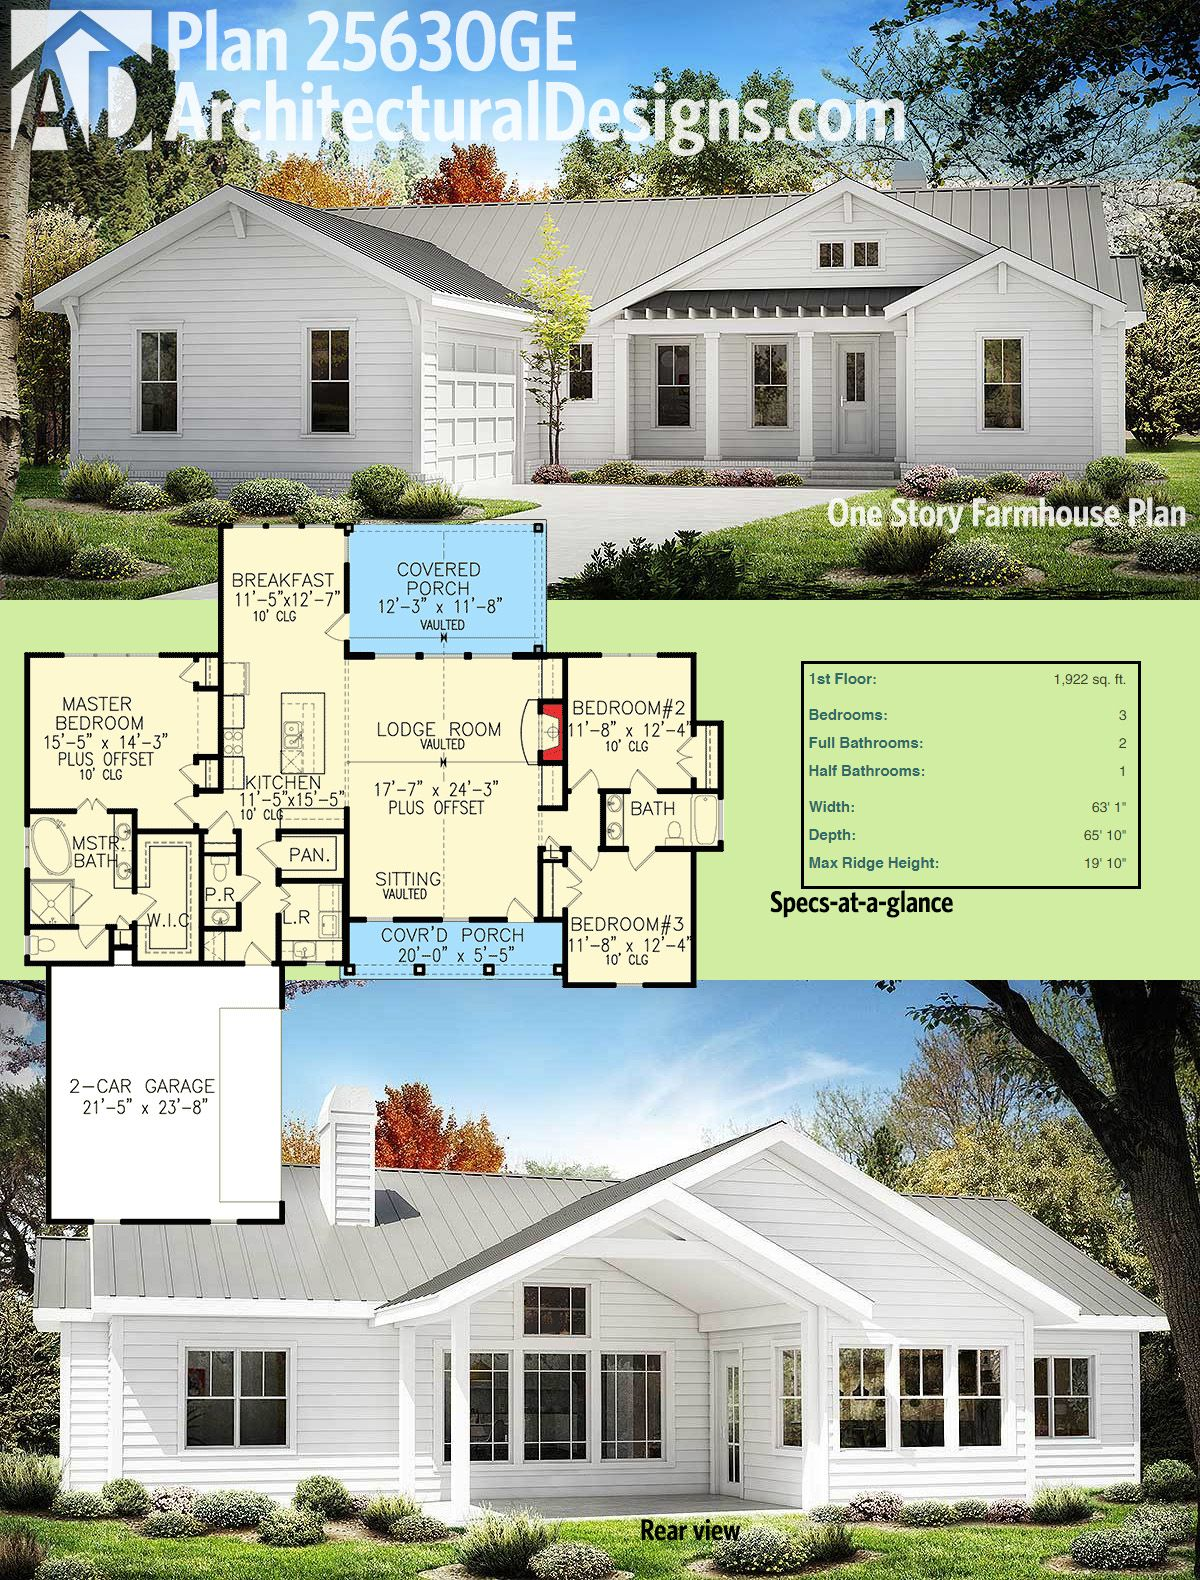 1900 Farmhouse Remodel Plan 25630ge One Story Farmhouse Plan Home Remodel House